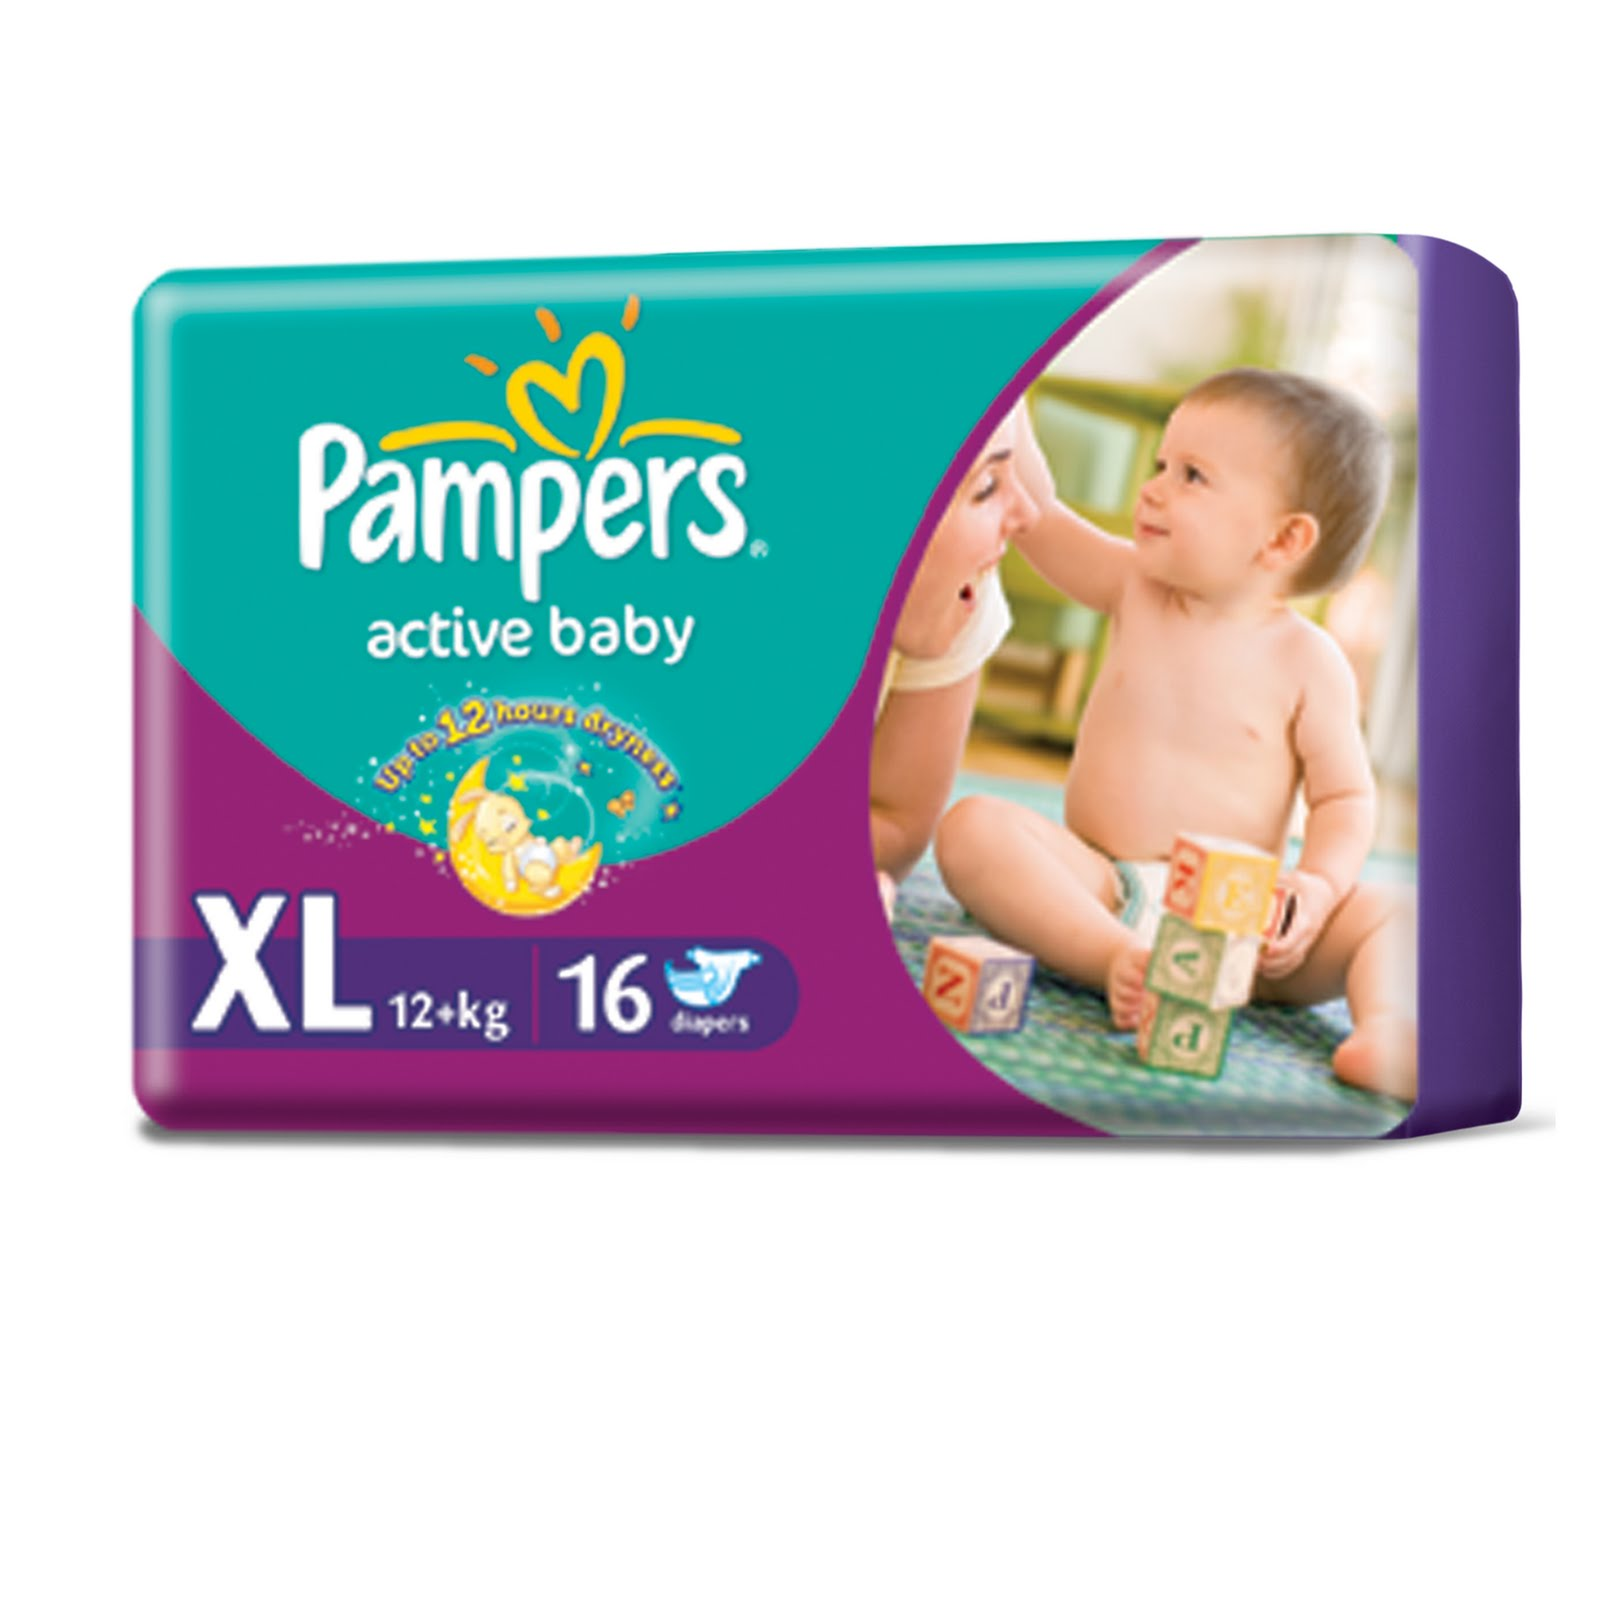 Pampers For Newborns